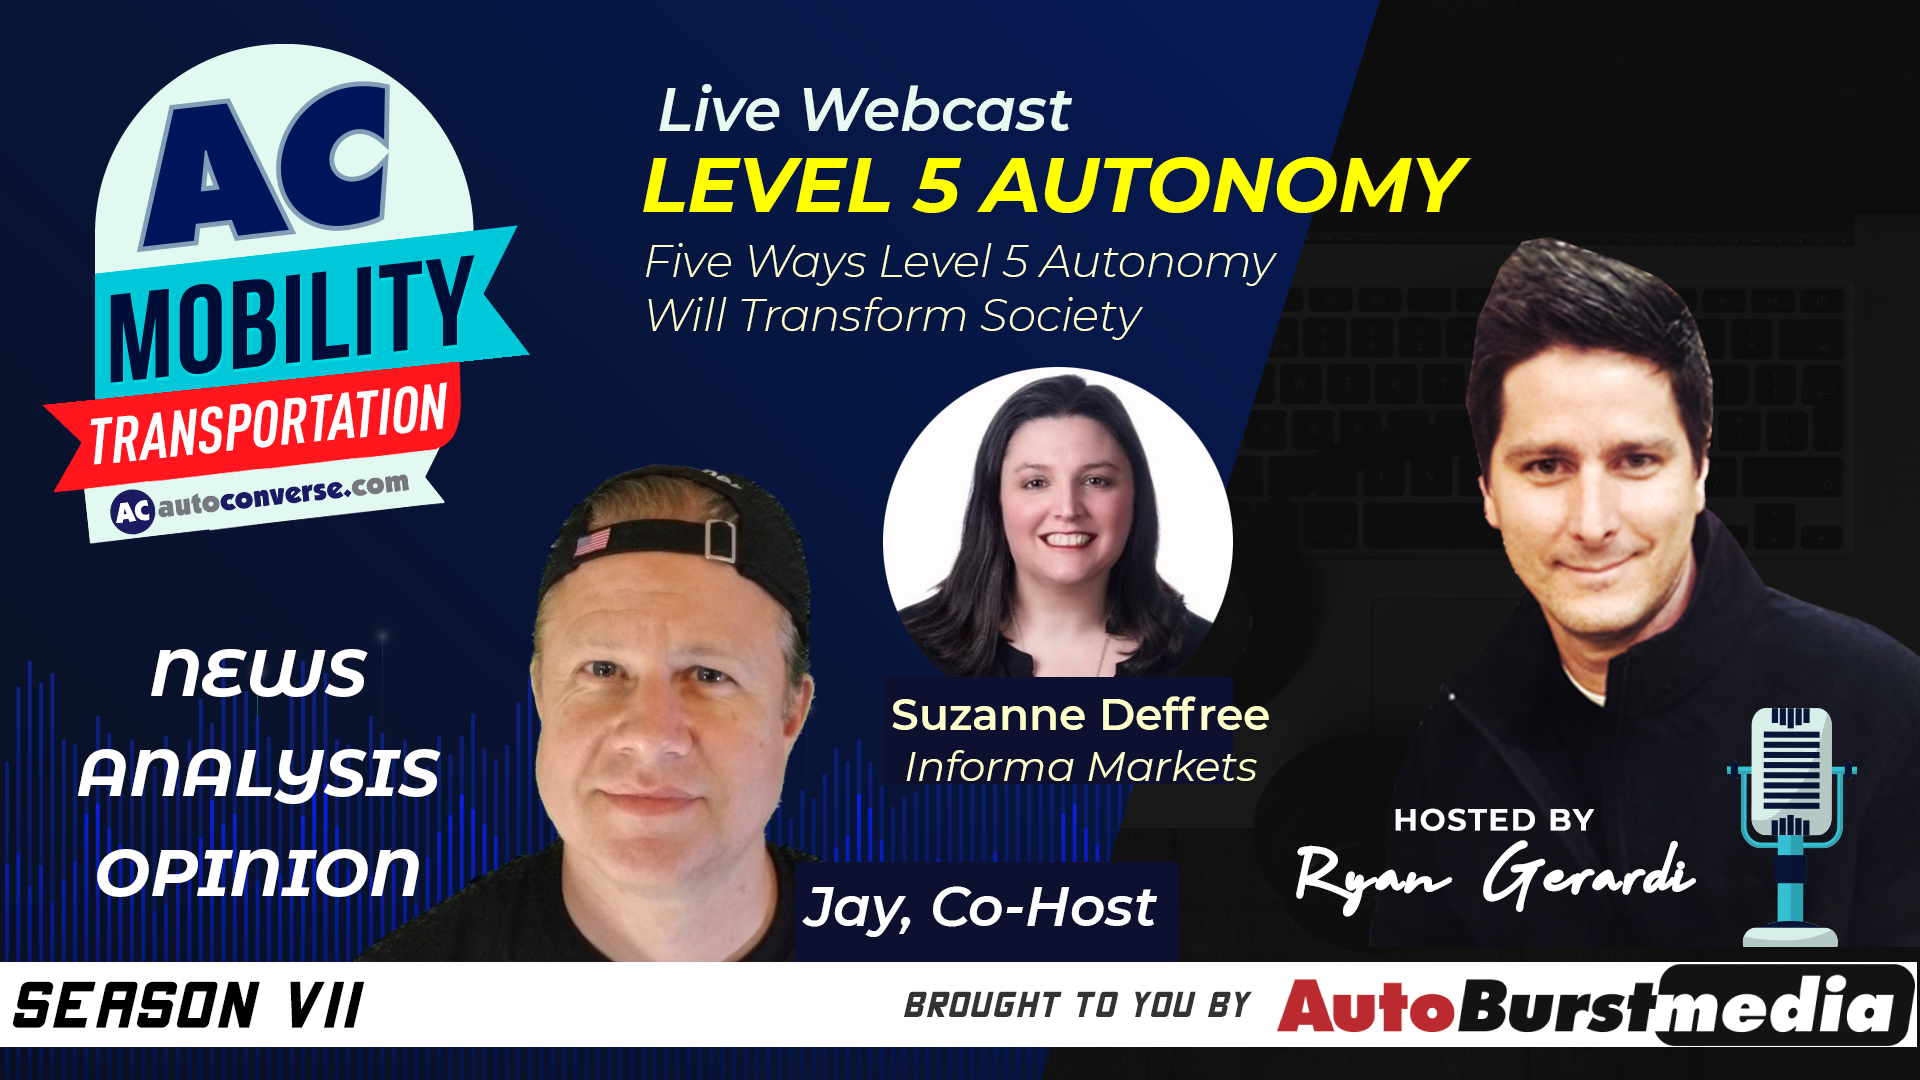 WED MAY 6. Five Ways Level 5 Autonomy Will Transform Society. Live Interview & Mastermind